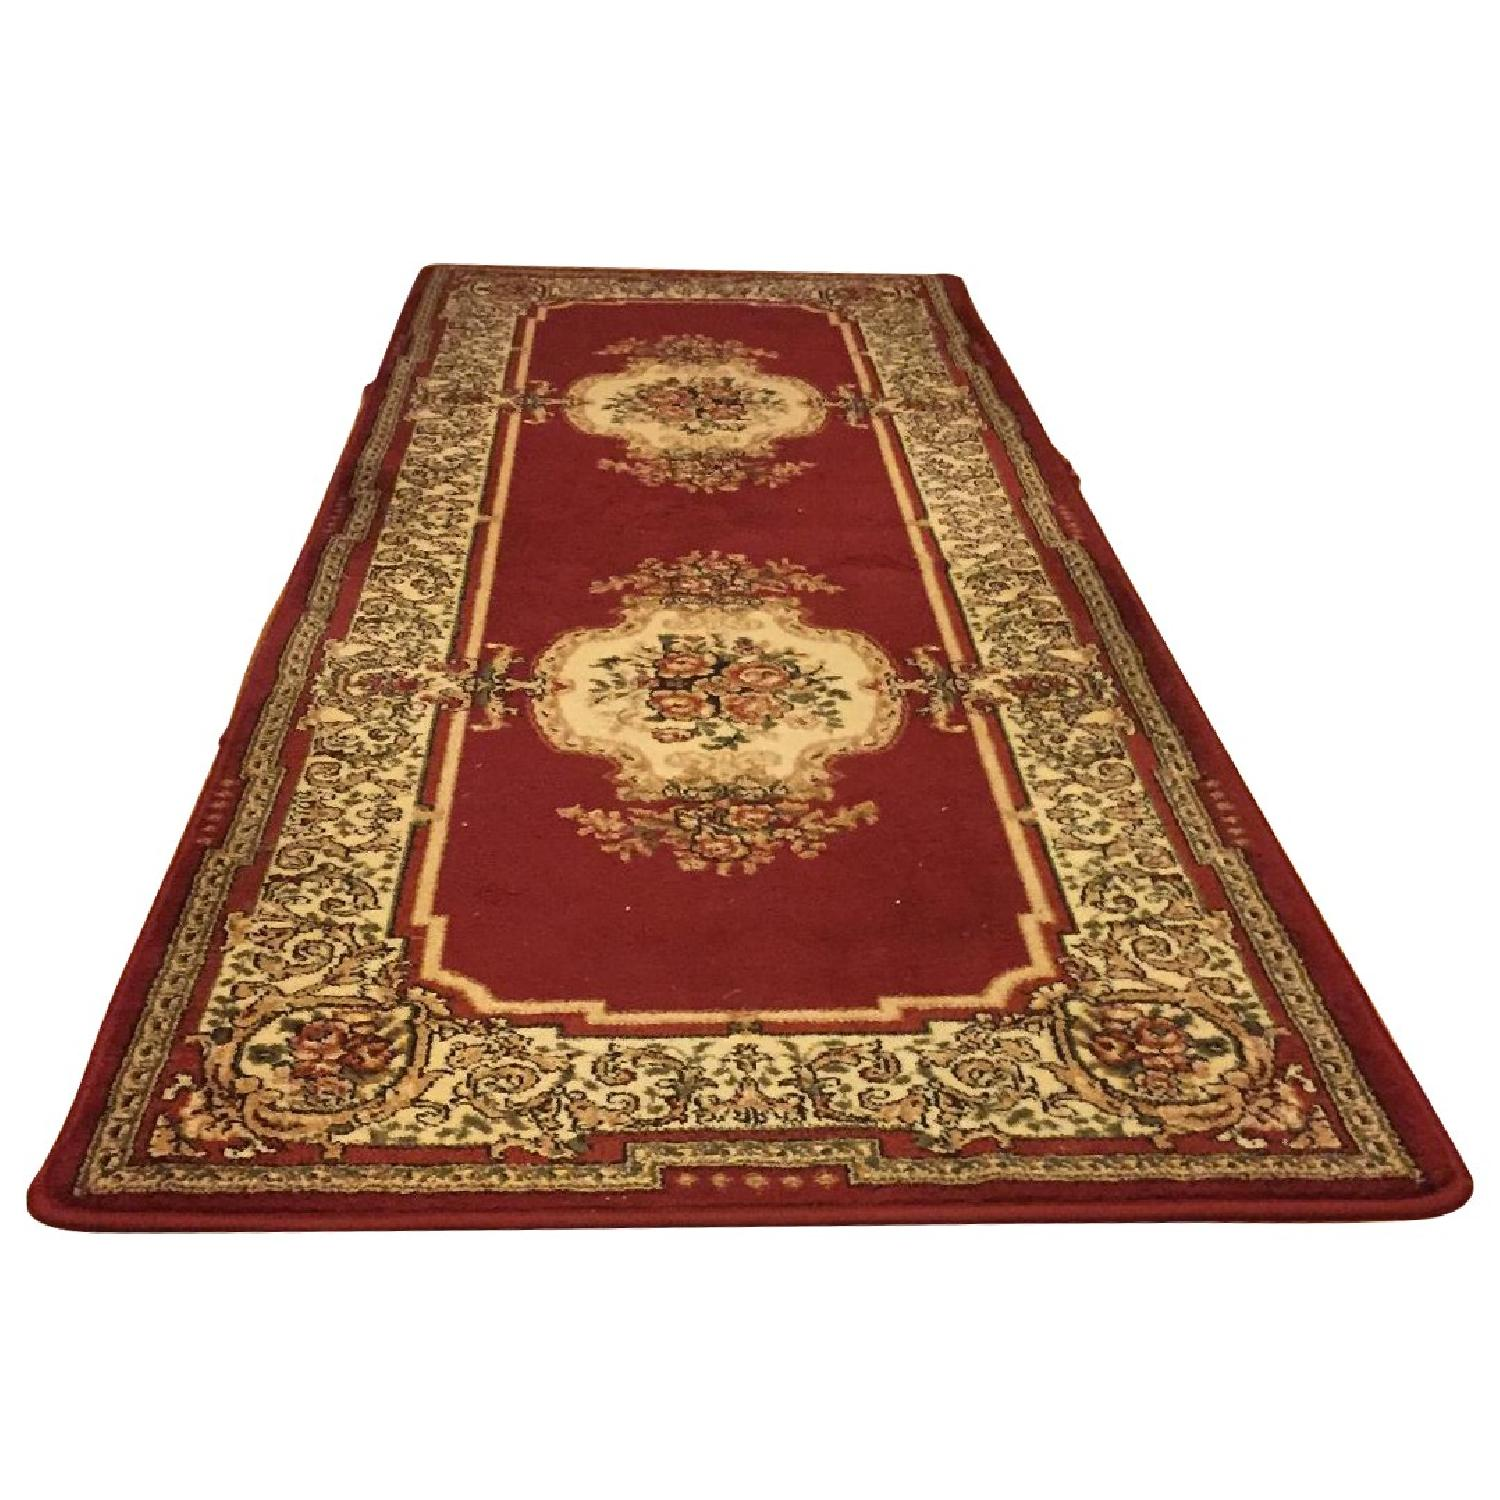 Abrahami Imperial Collection Rug